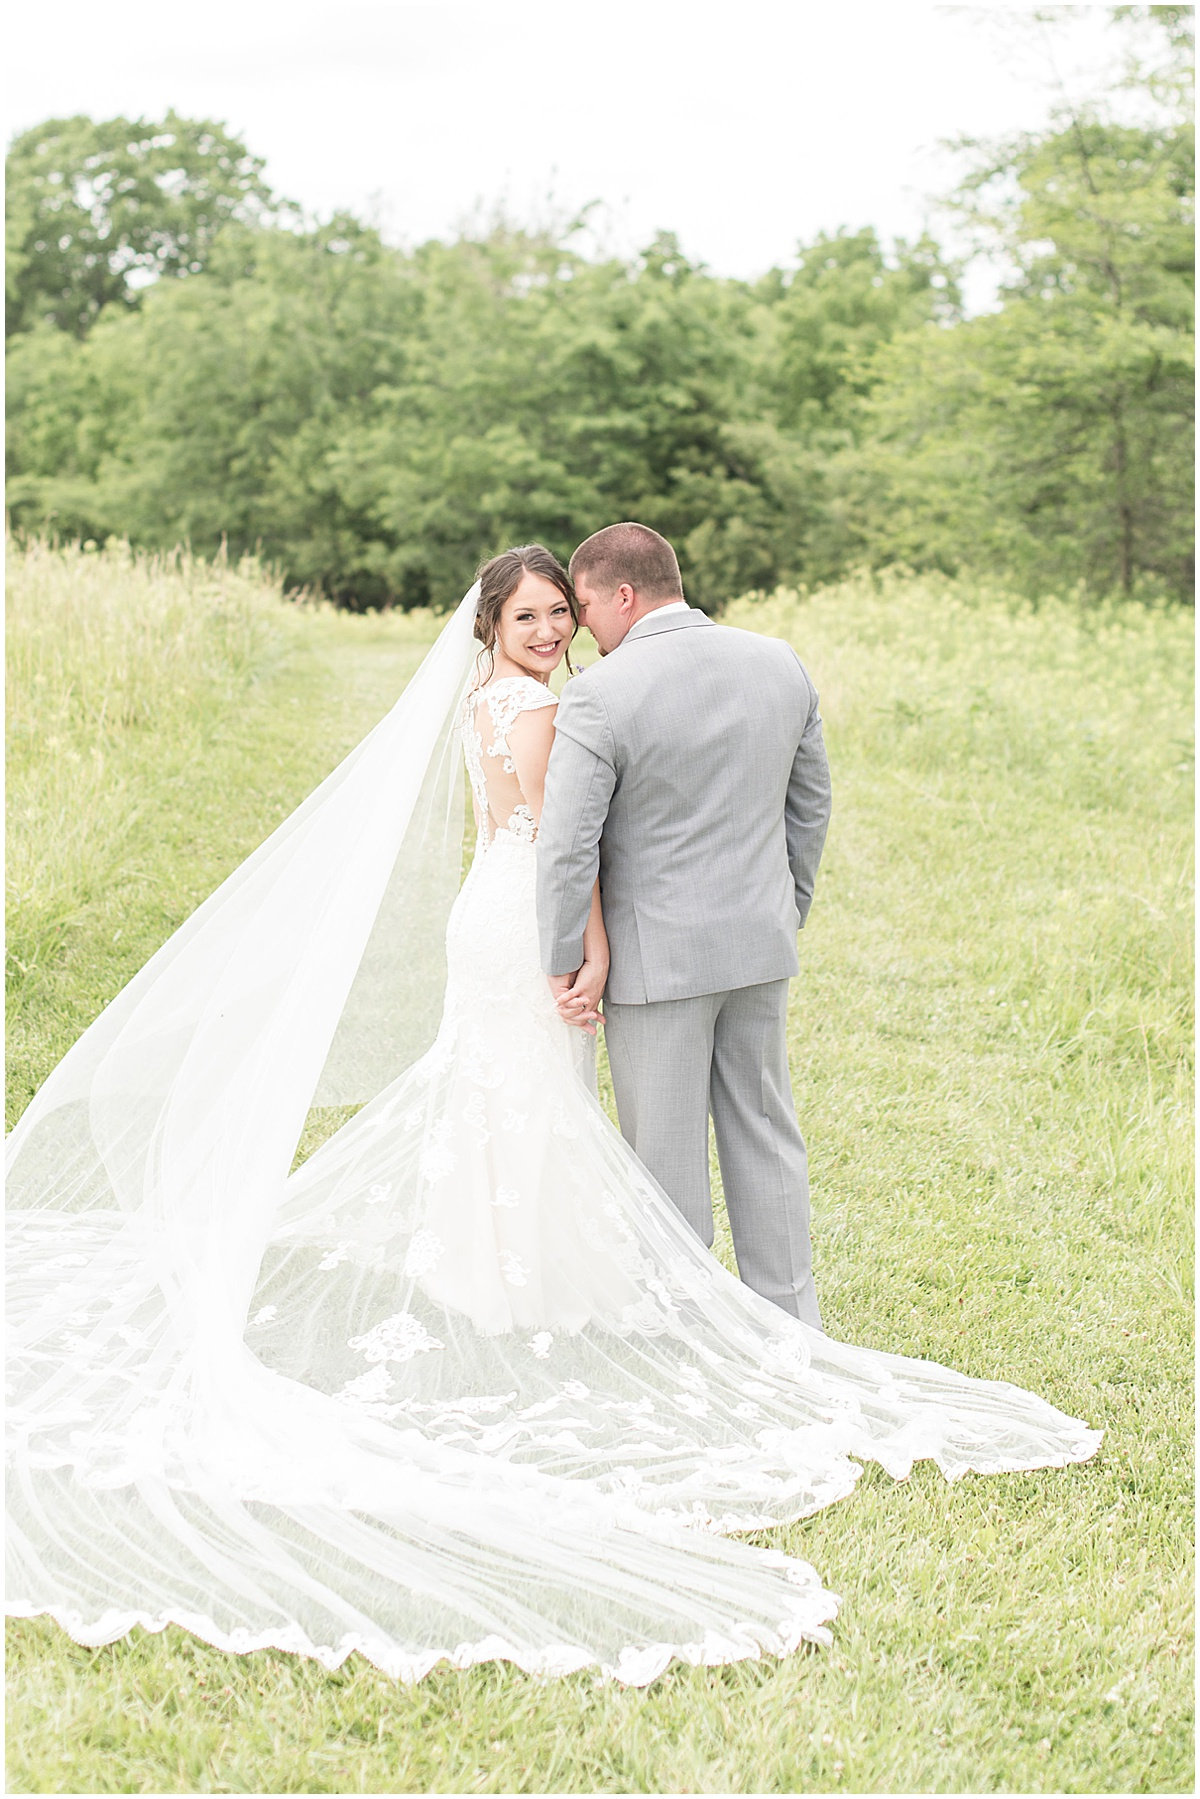 Bride and groom portraits before Hunny Creek Haven Wedding in Waldron, Indiana by Victoria Rayburn Photography